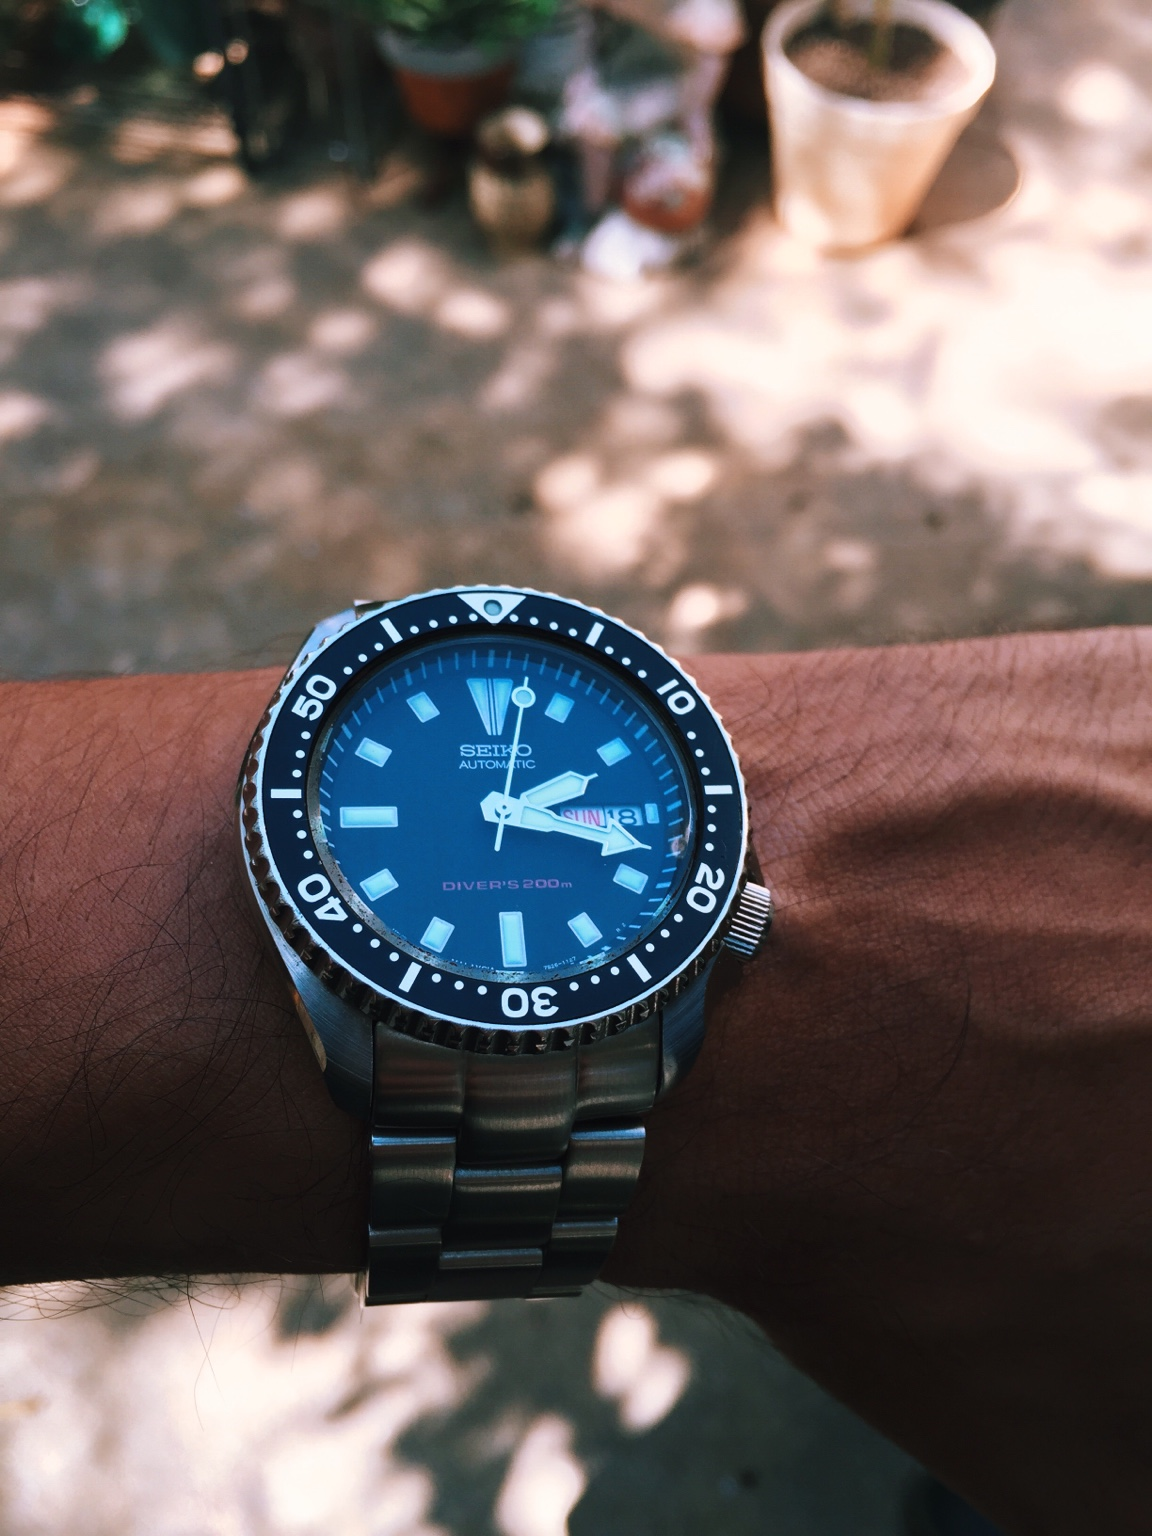 Seiko SKX/Turtle lollipop on short-end of second hand